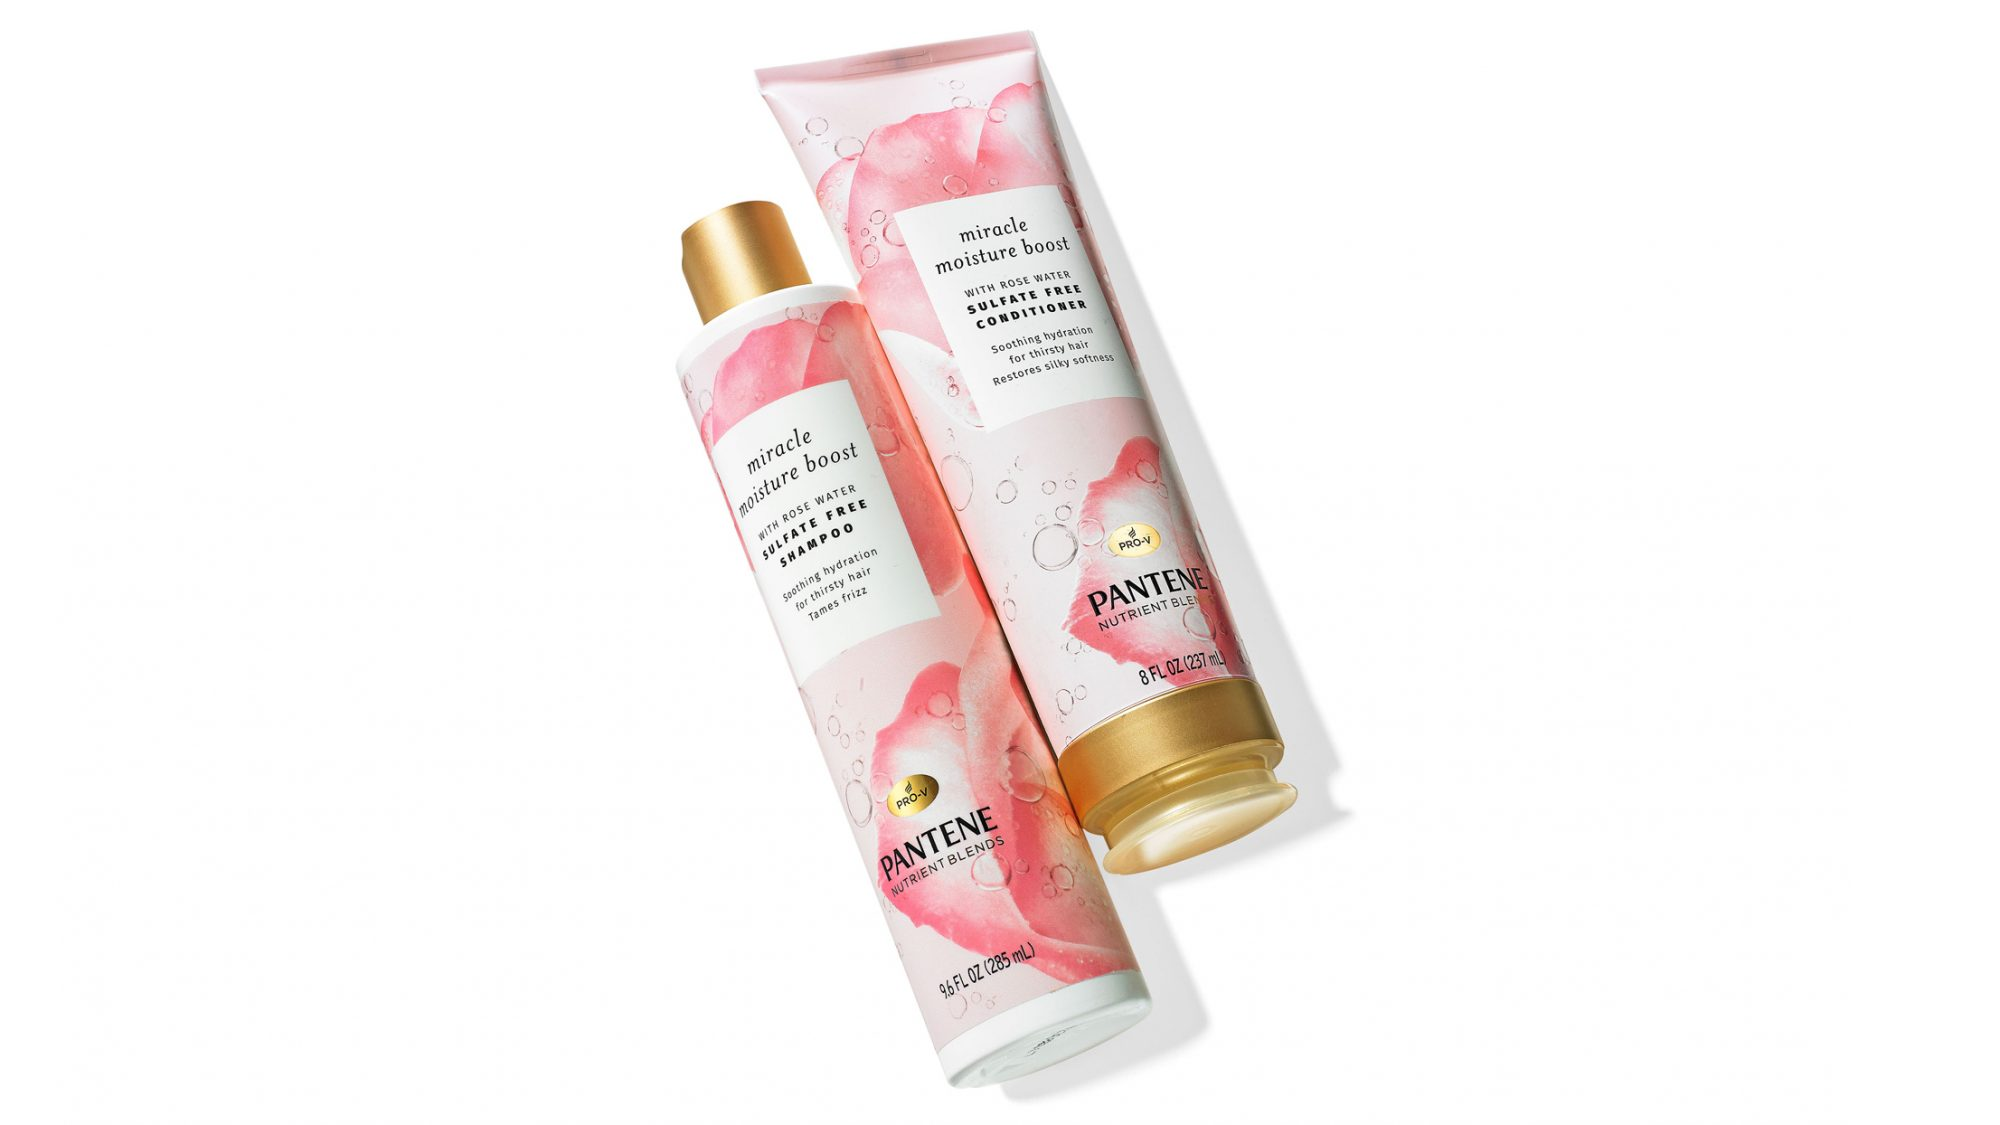 Pantene Nutrient Blends Shampoo and Conditioner